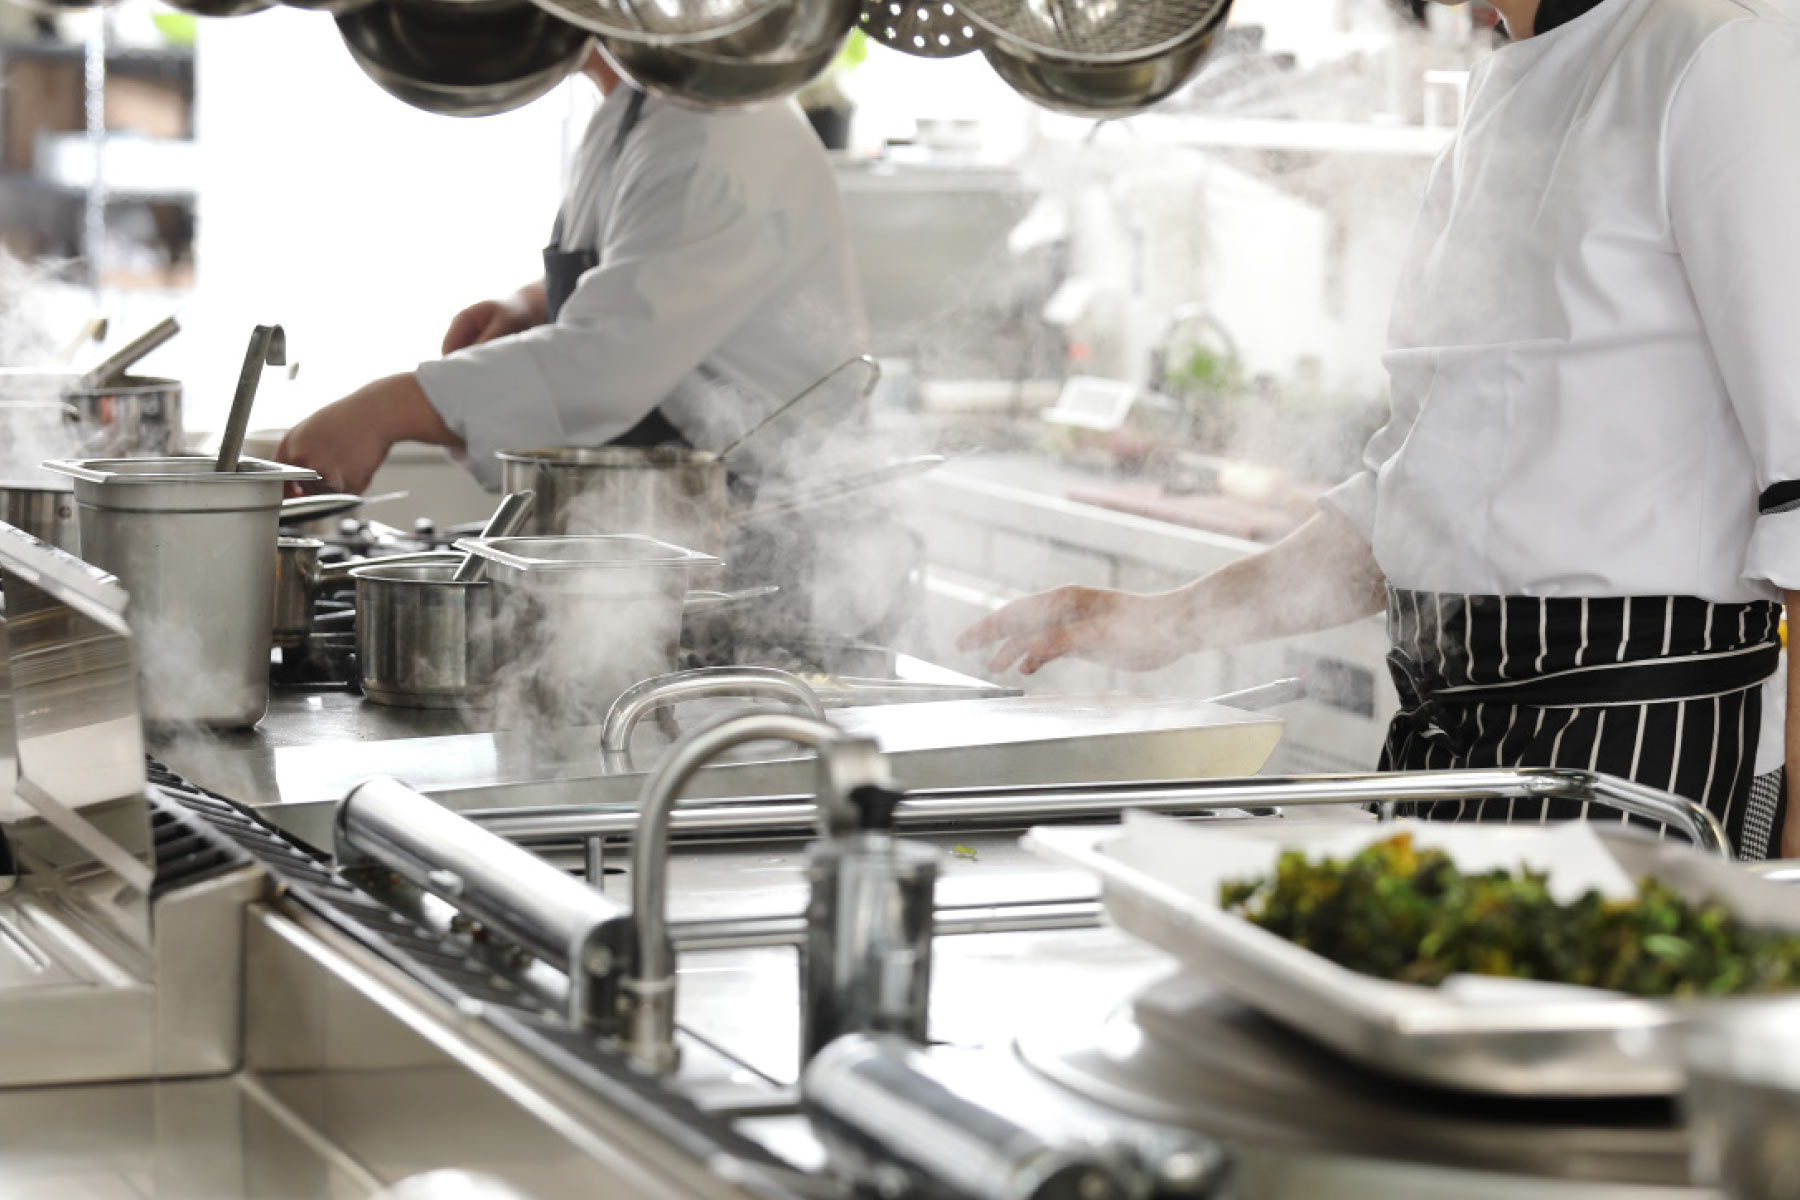 Chefs working in steaming stainless steel kitchen